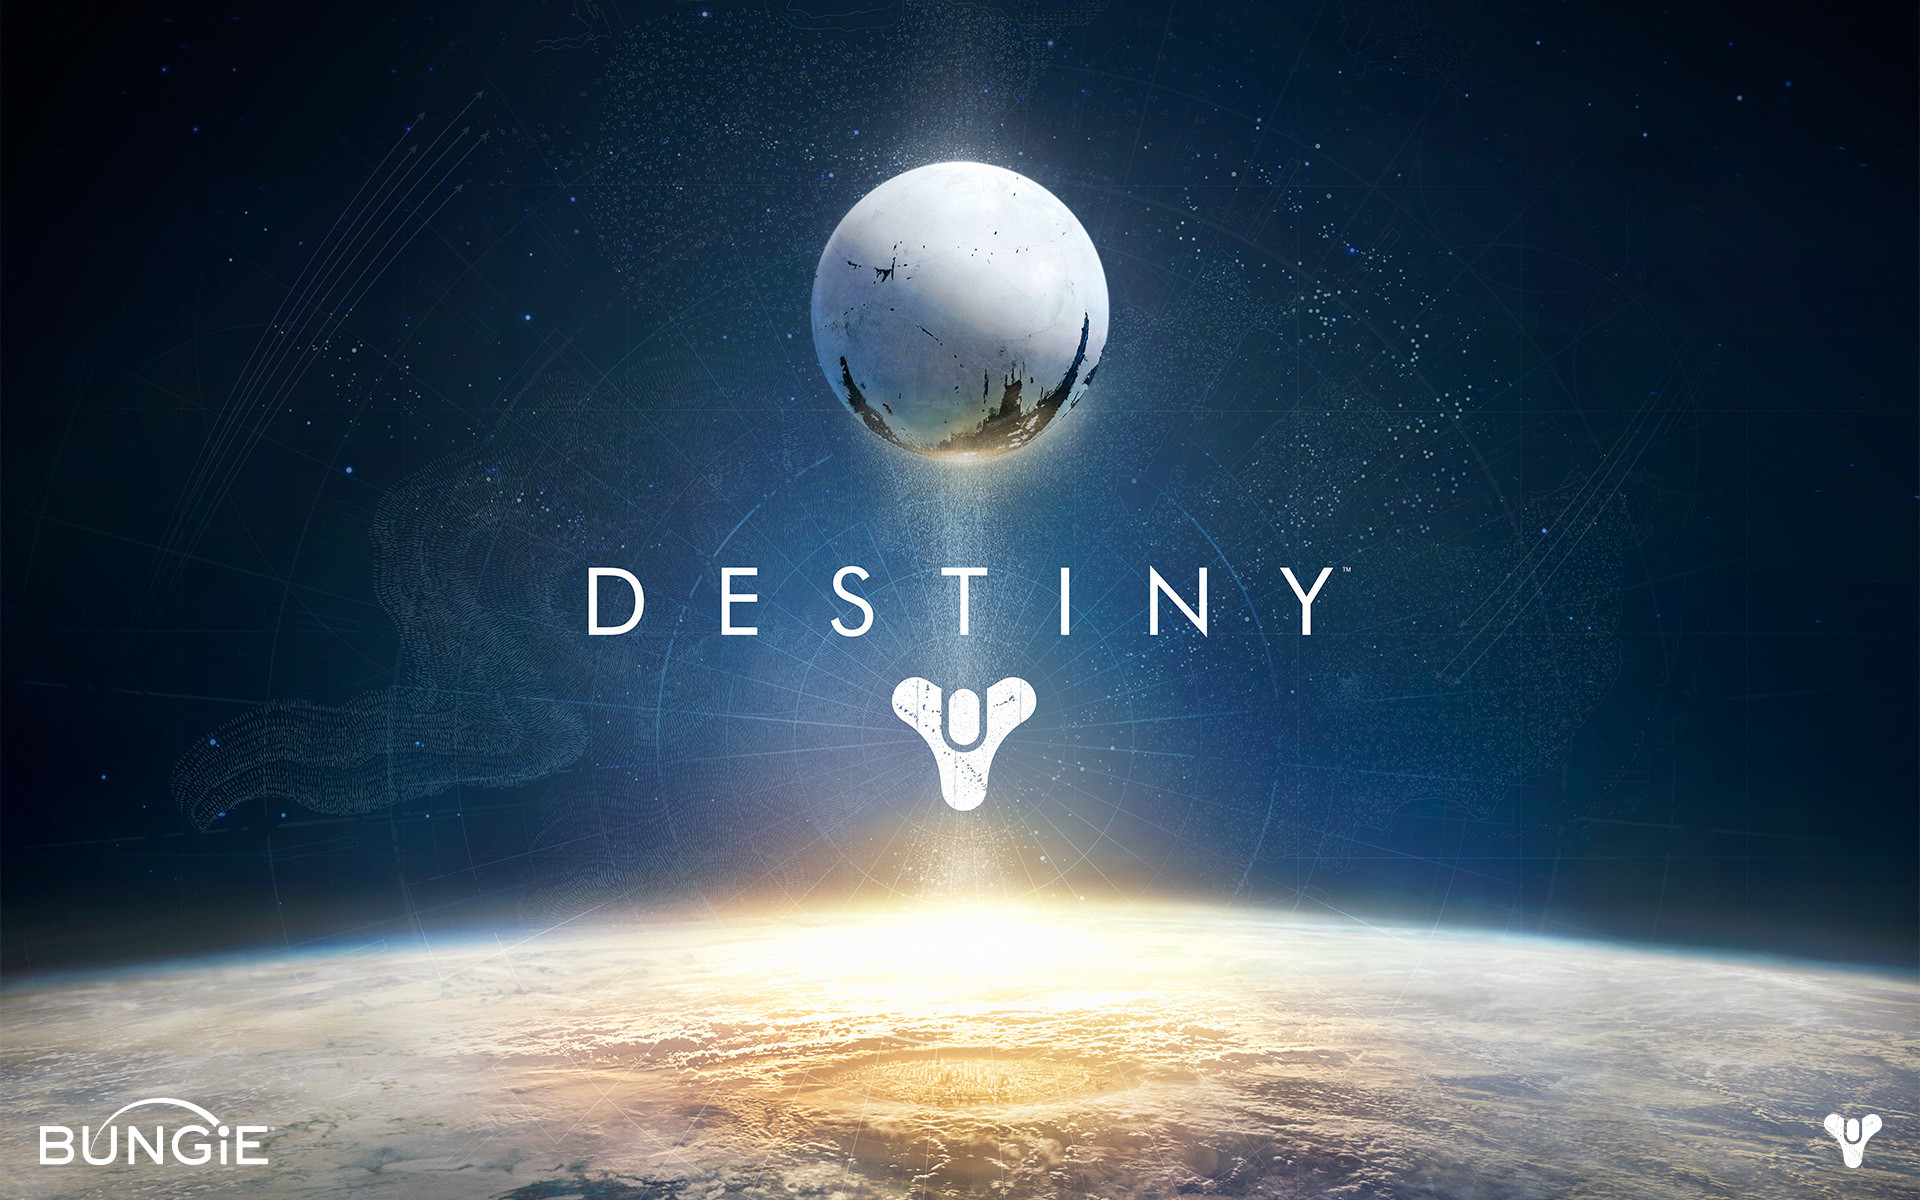 There Are A Lot Of EBs Opening For The Destiny Midnight Launch